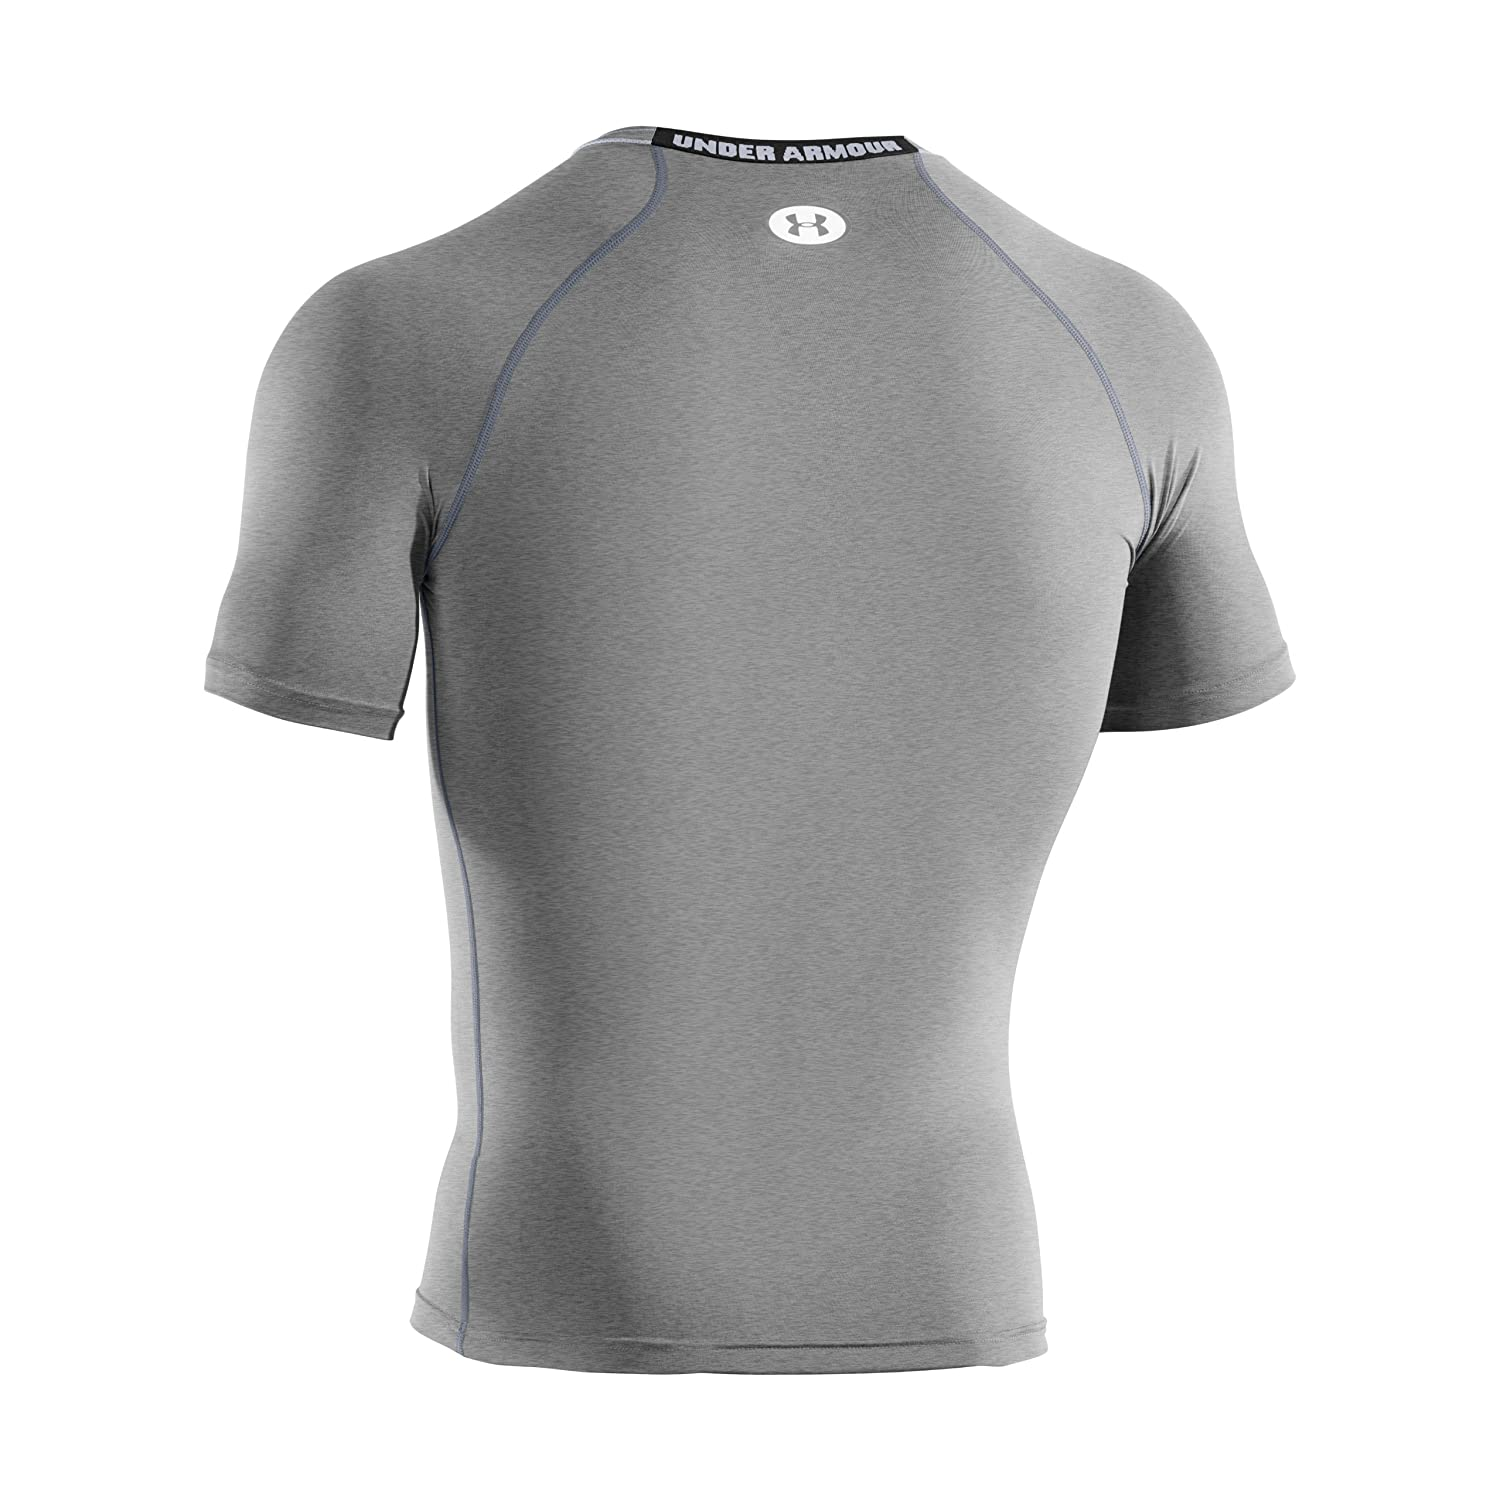 T shirt white black - Under Armour Sonic Compression Men S T Shirt Amazon Co Uk Sports Outdoors